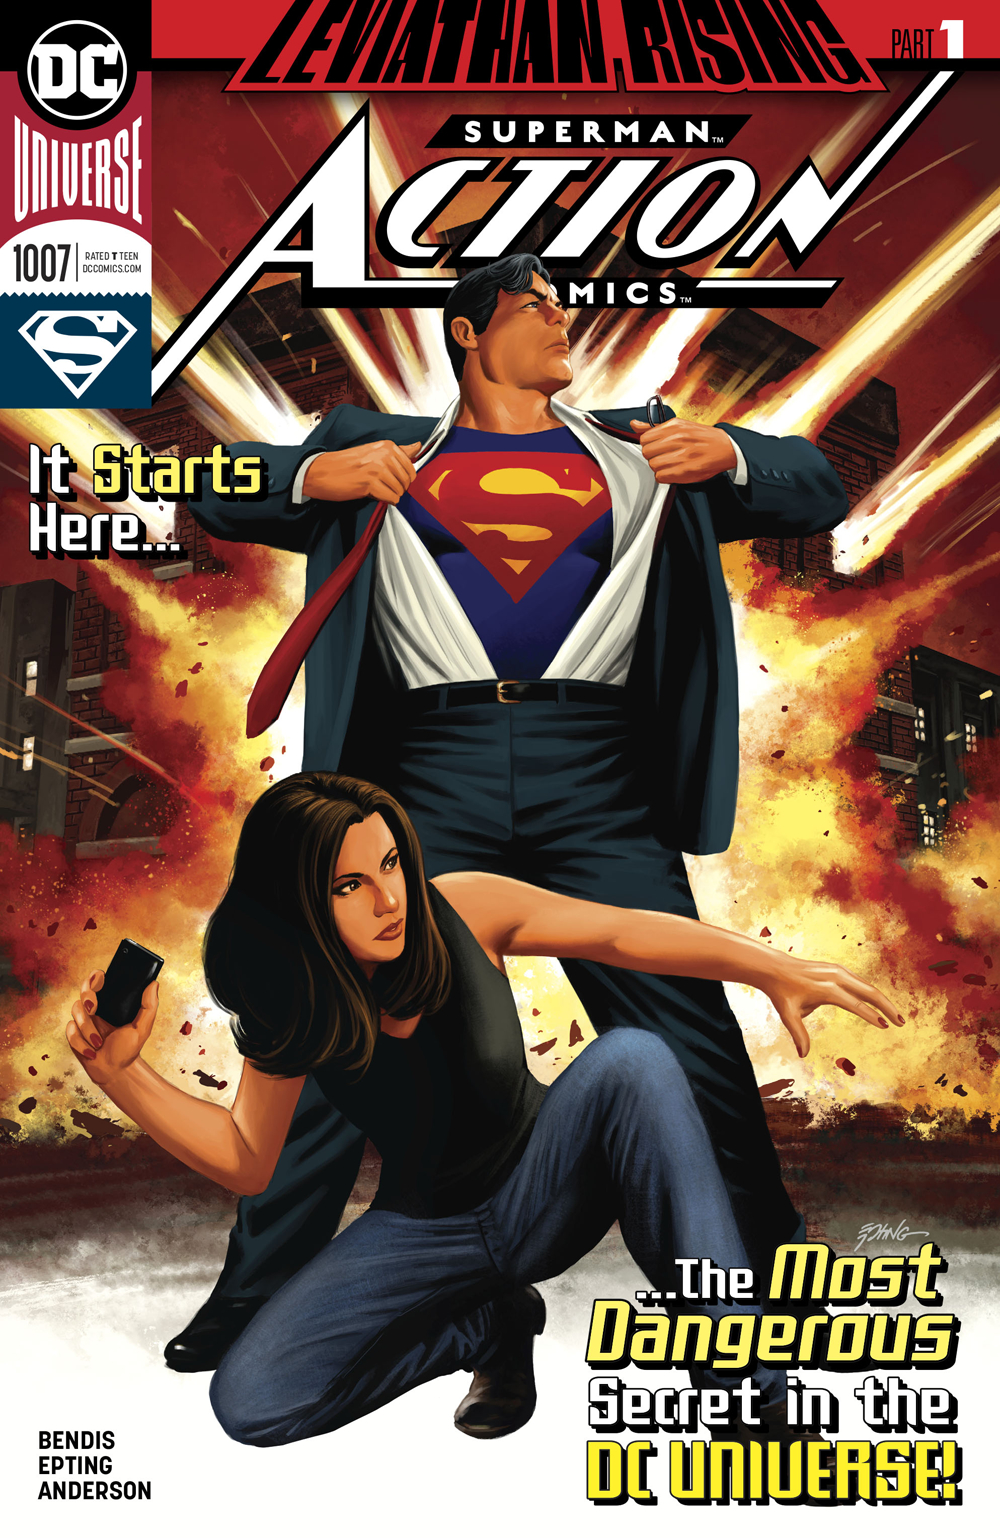 Action Comics #1007  came out 1/30/2019.